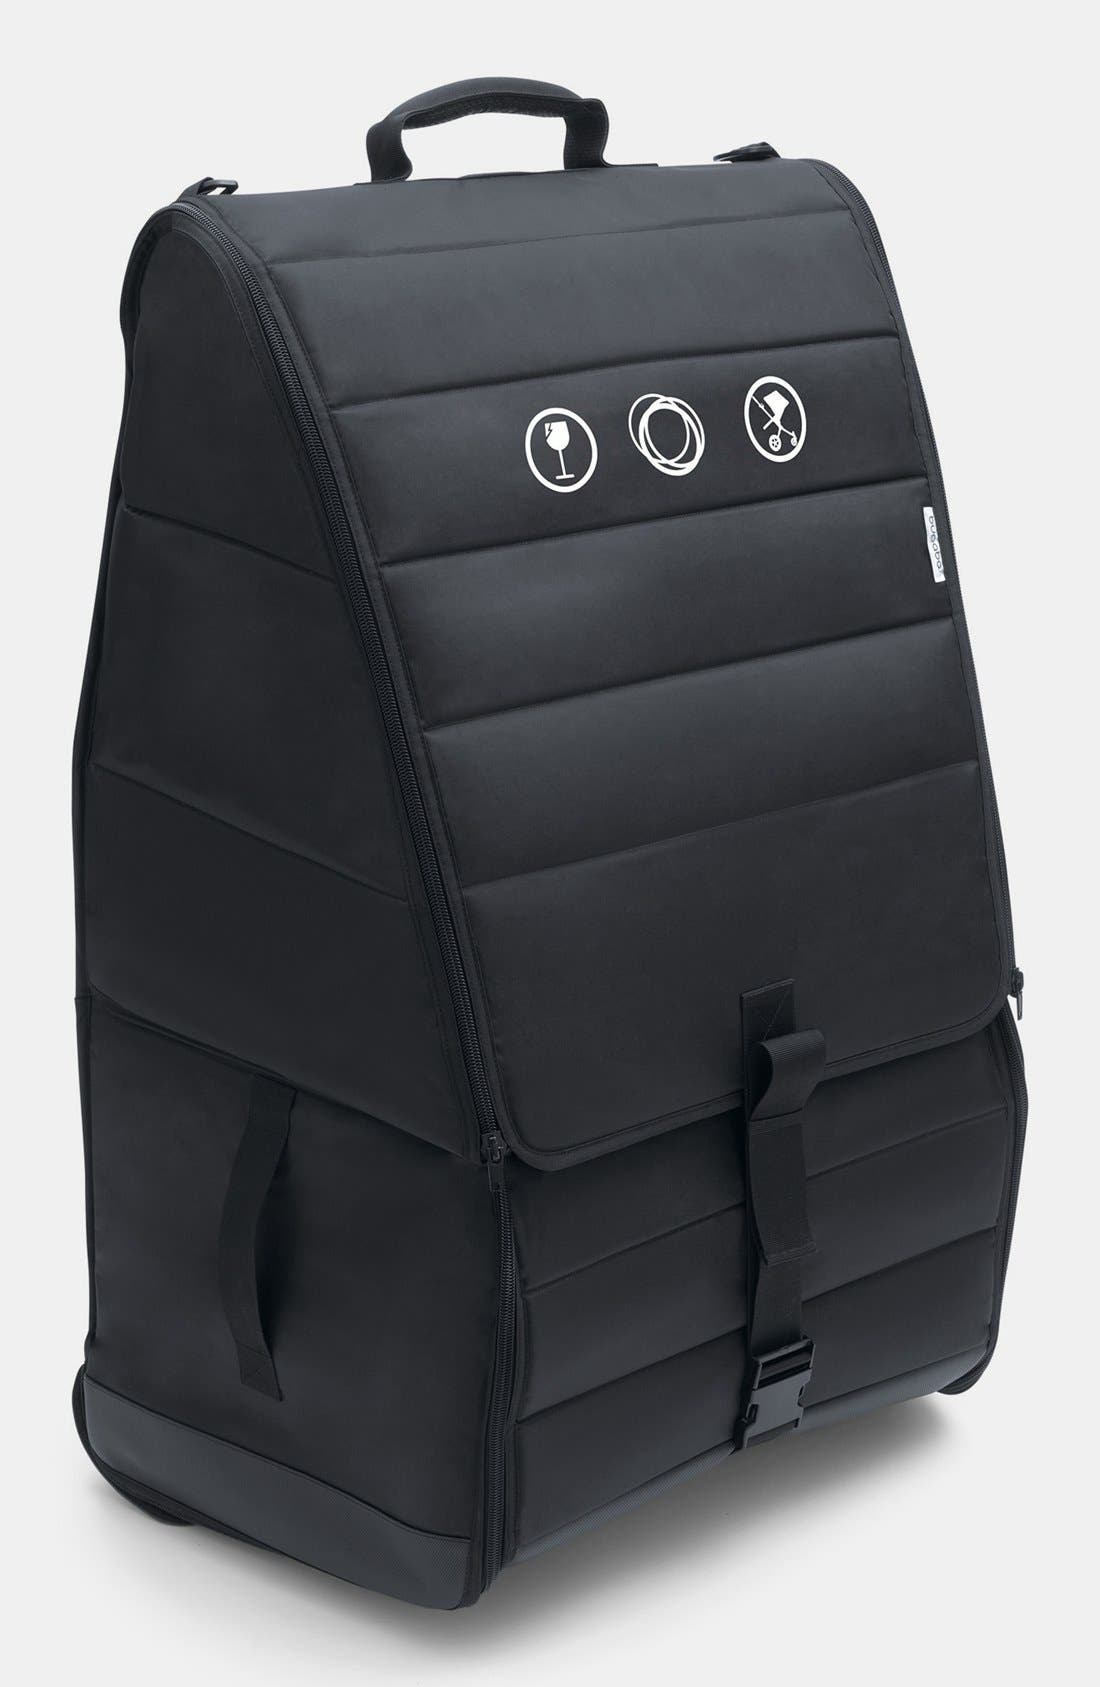 Main Image - Bugaboo Comfort Stroller Transport Bag